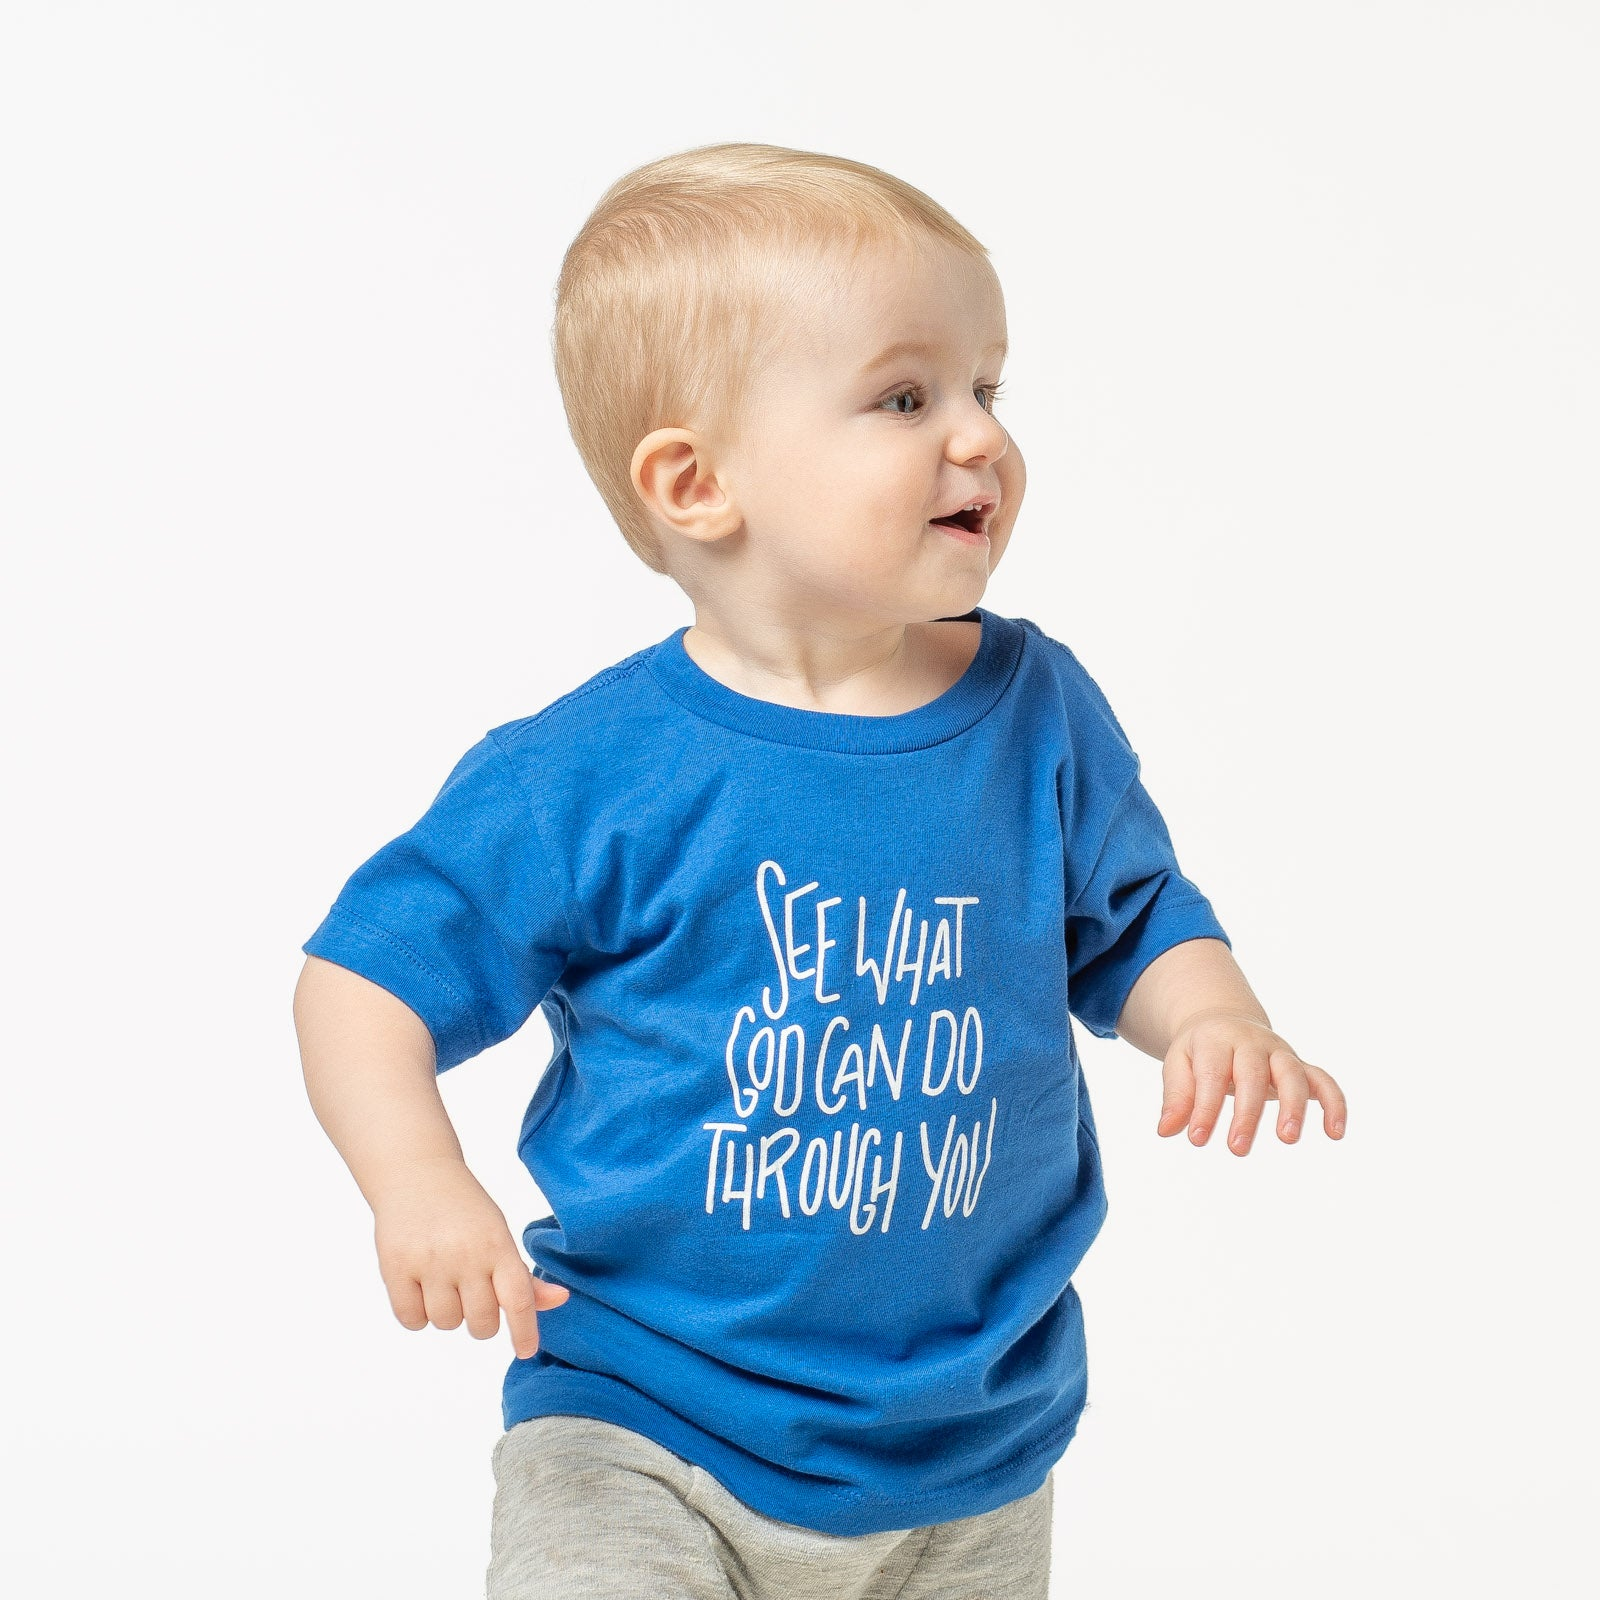 Kids 'See What God Can Do Through You' Blue Tee